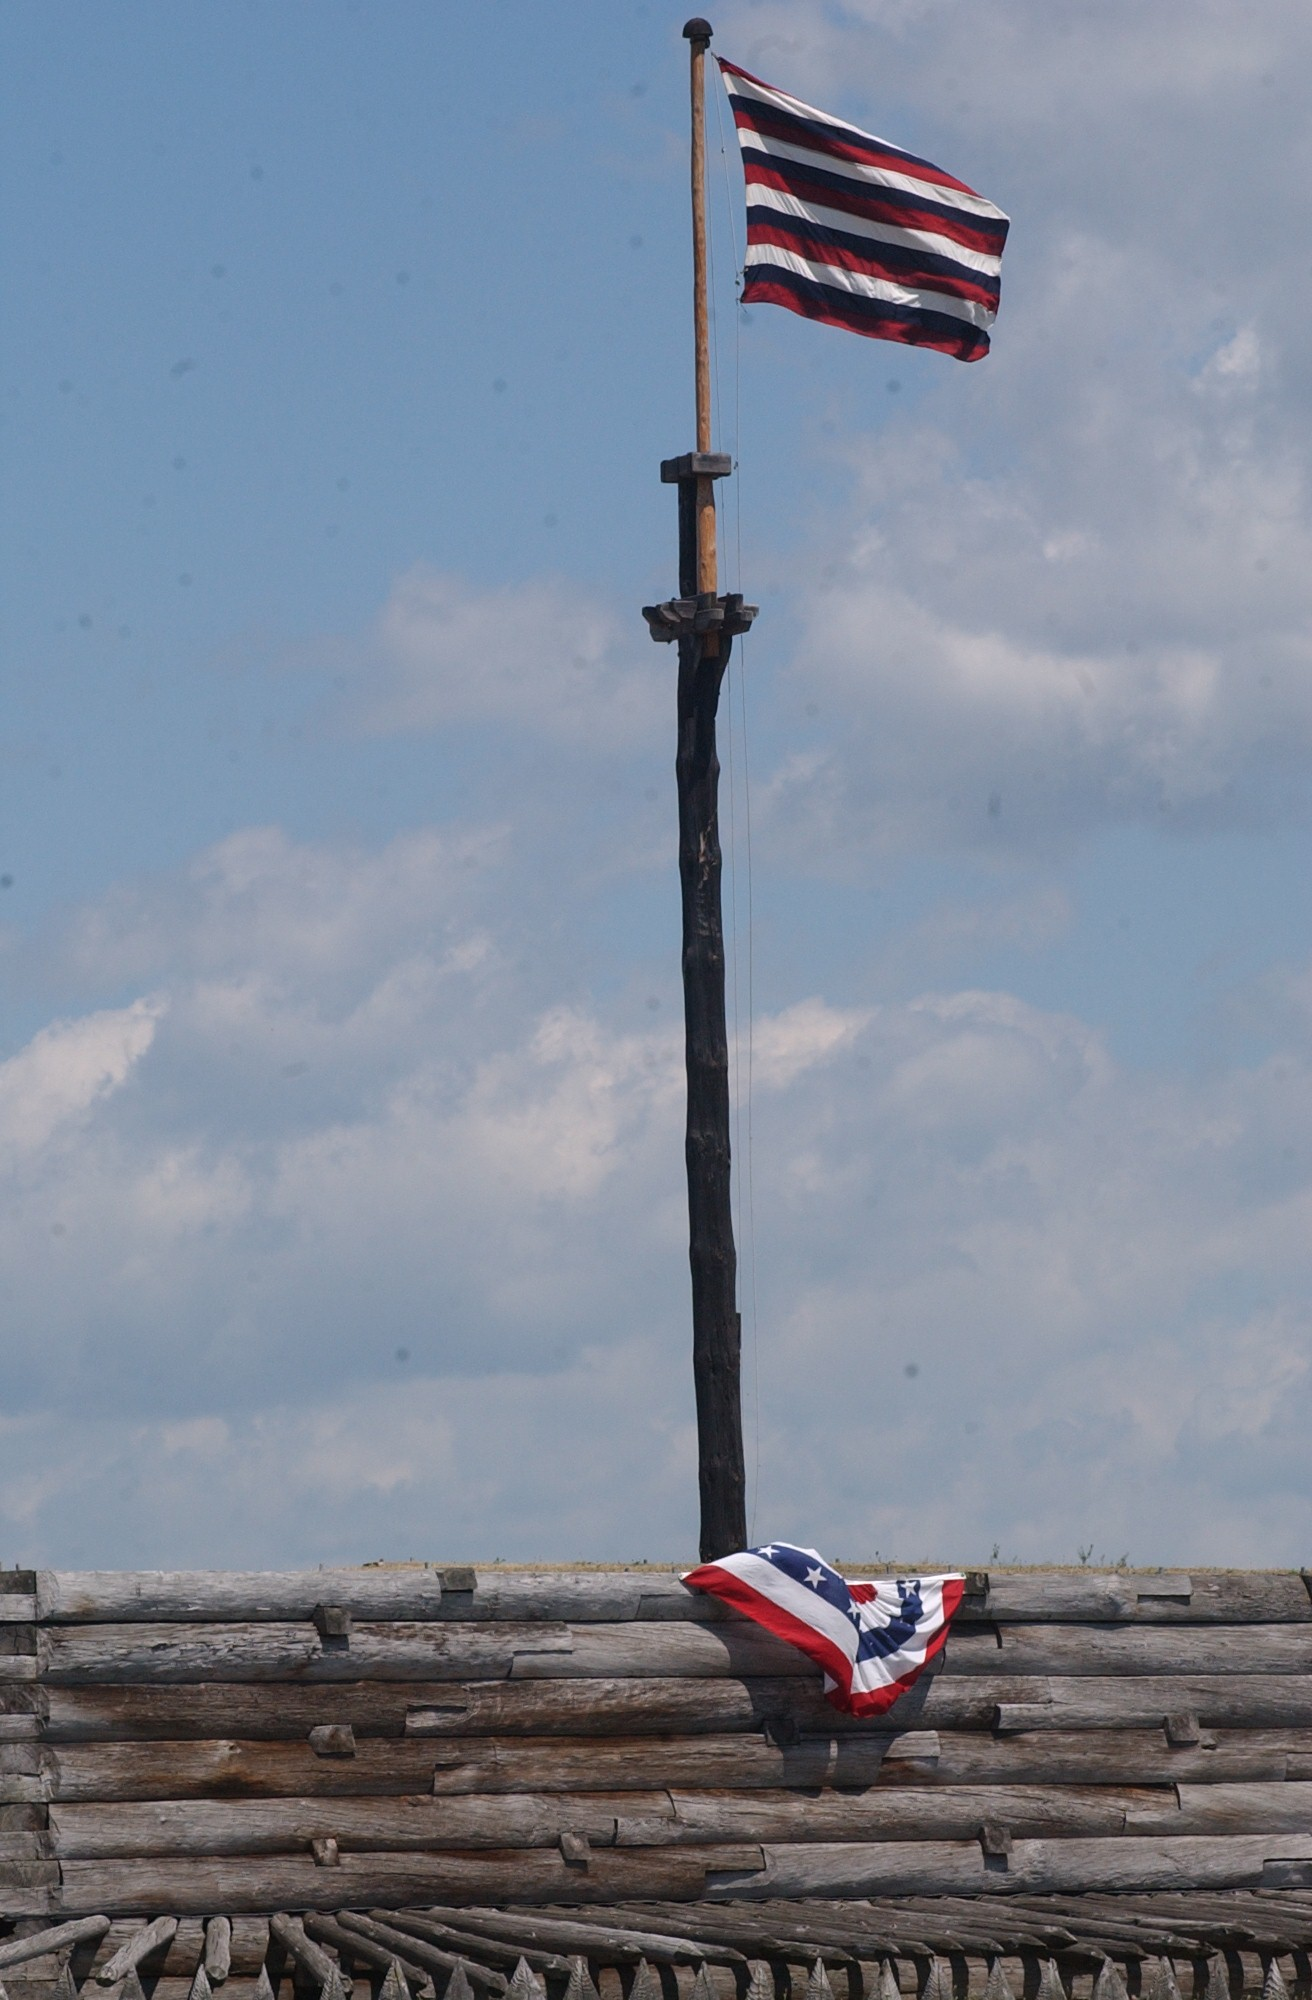 an alternating 13 stirped red, white, and blue striped flag flies in the sunlight over the fort wall